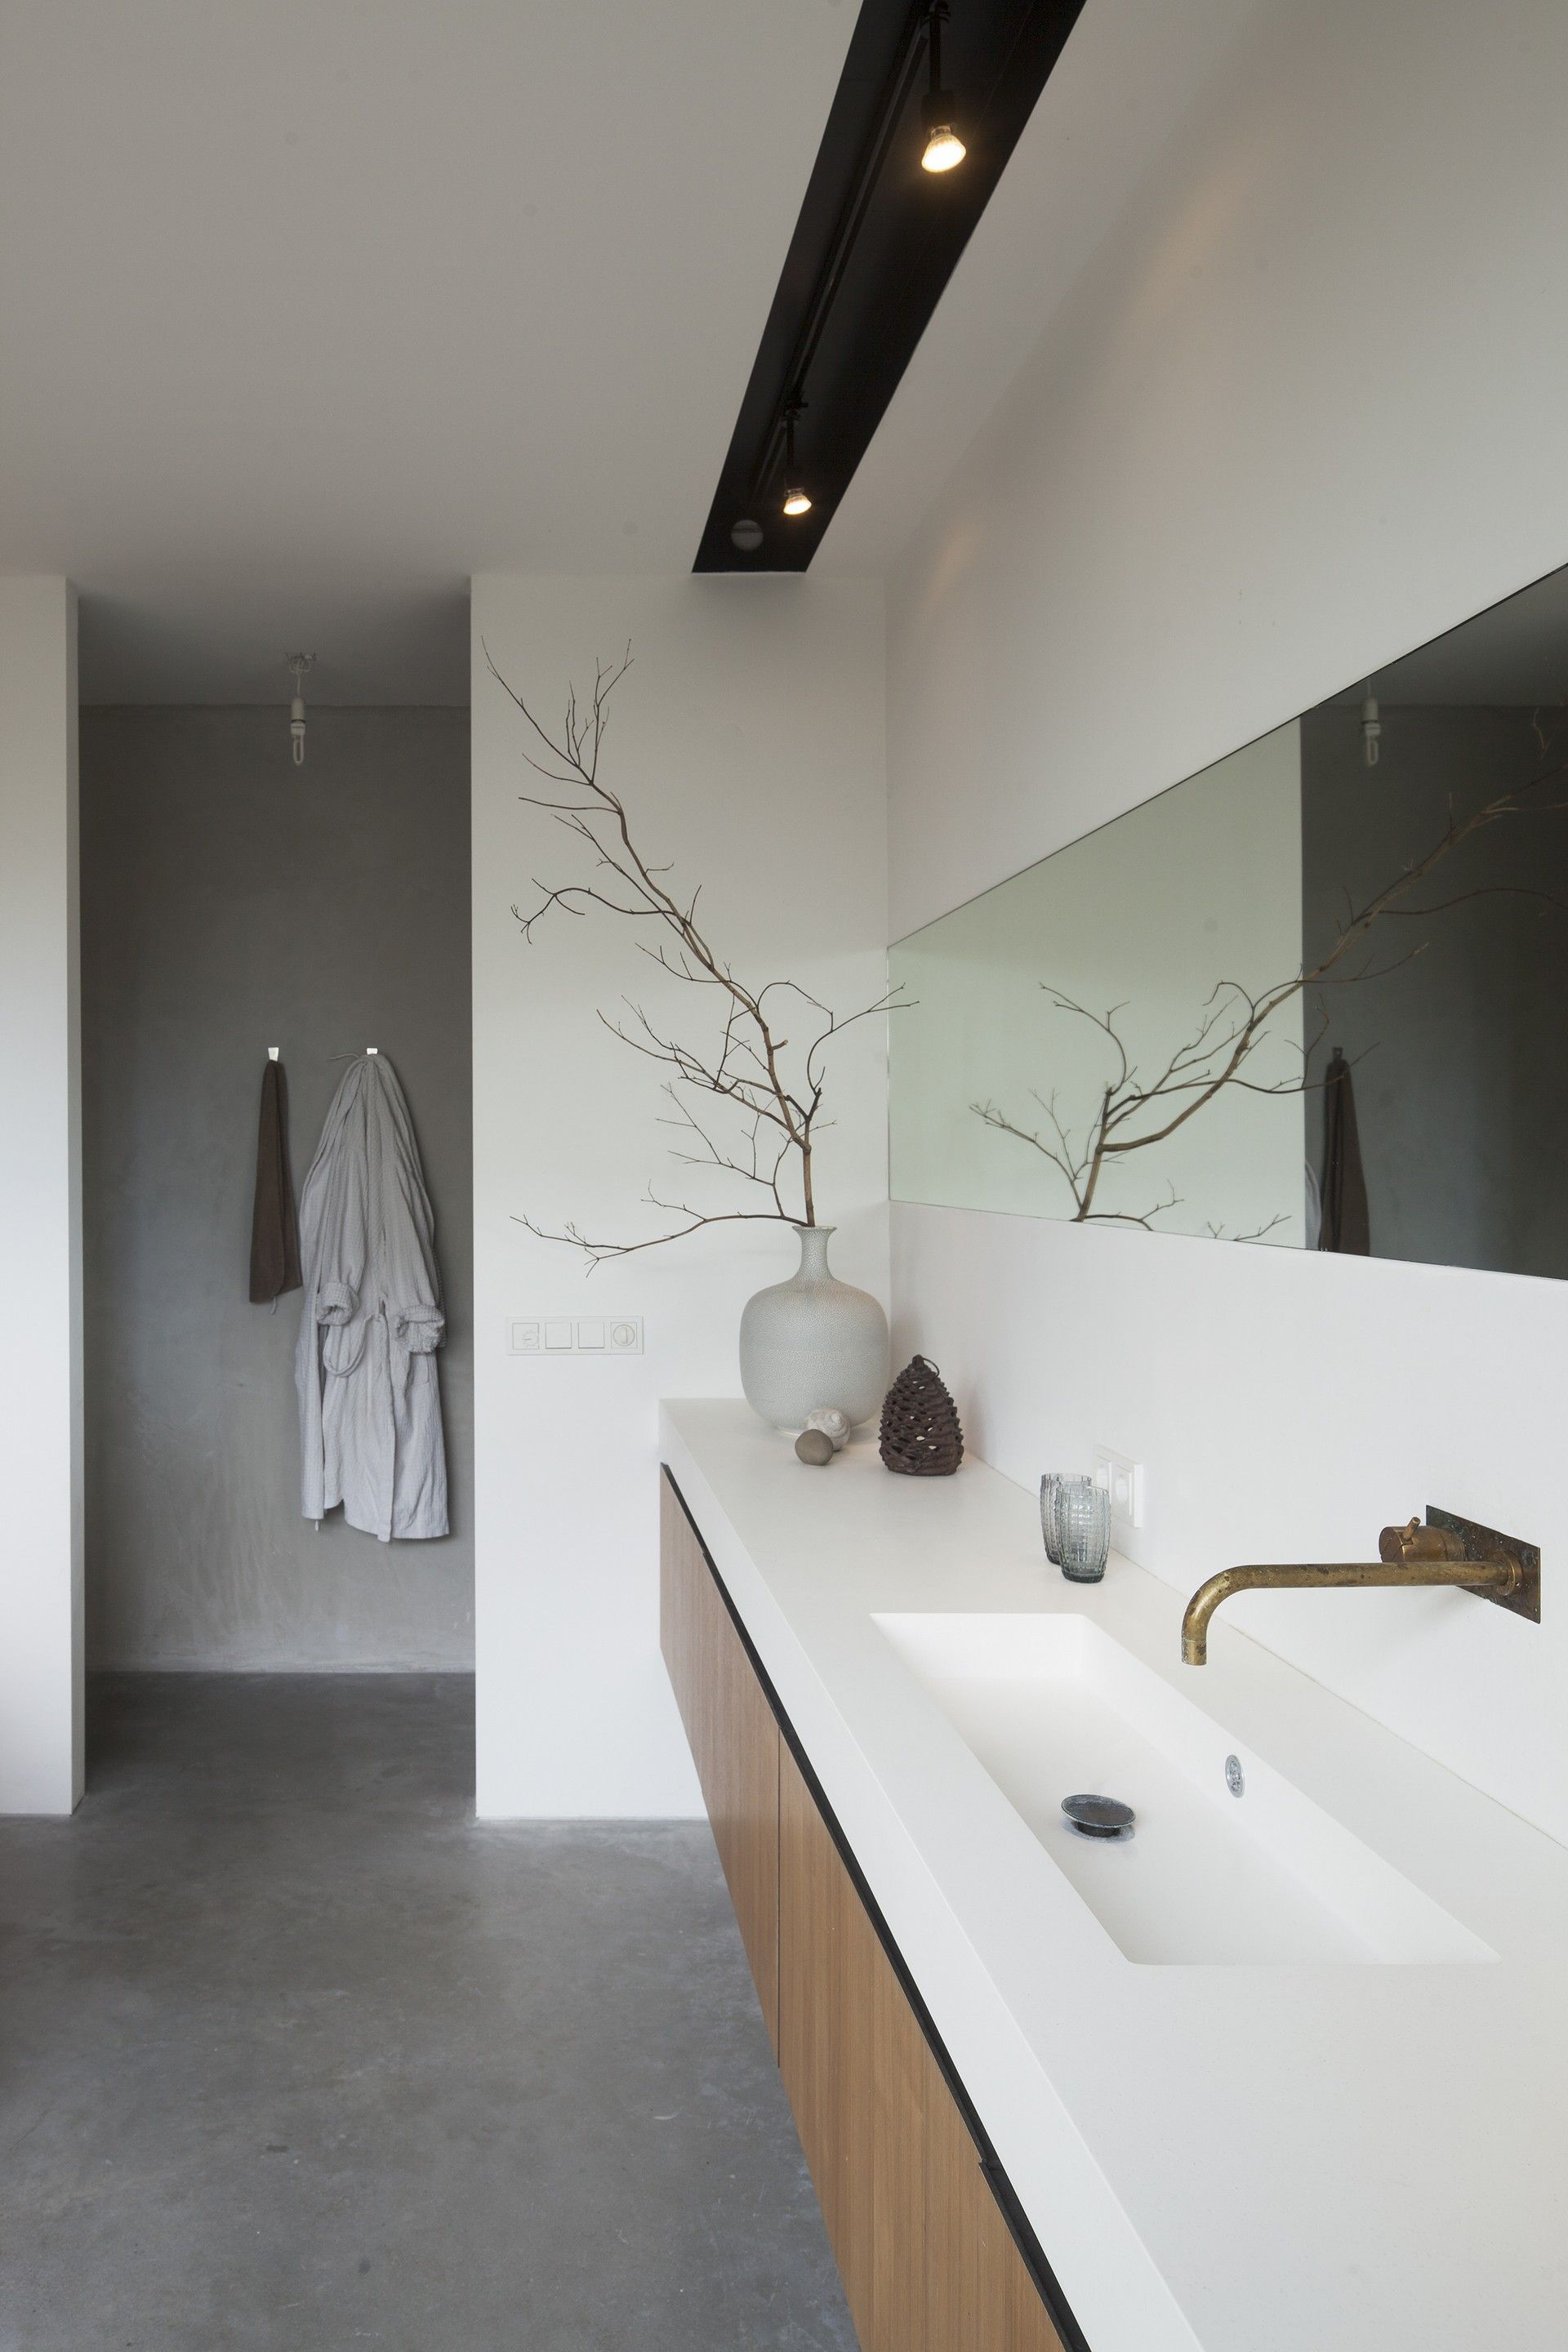 Bathroom interior wall villa stamerbos in almere netherlands by f architects  home